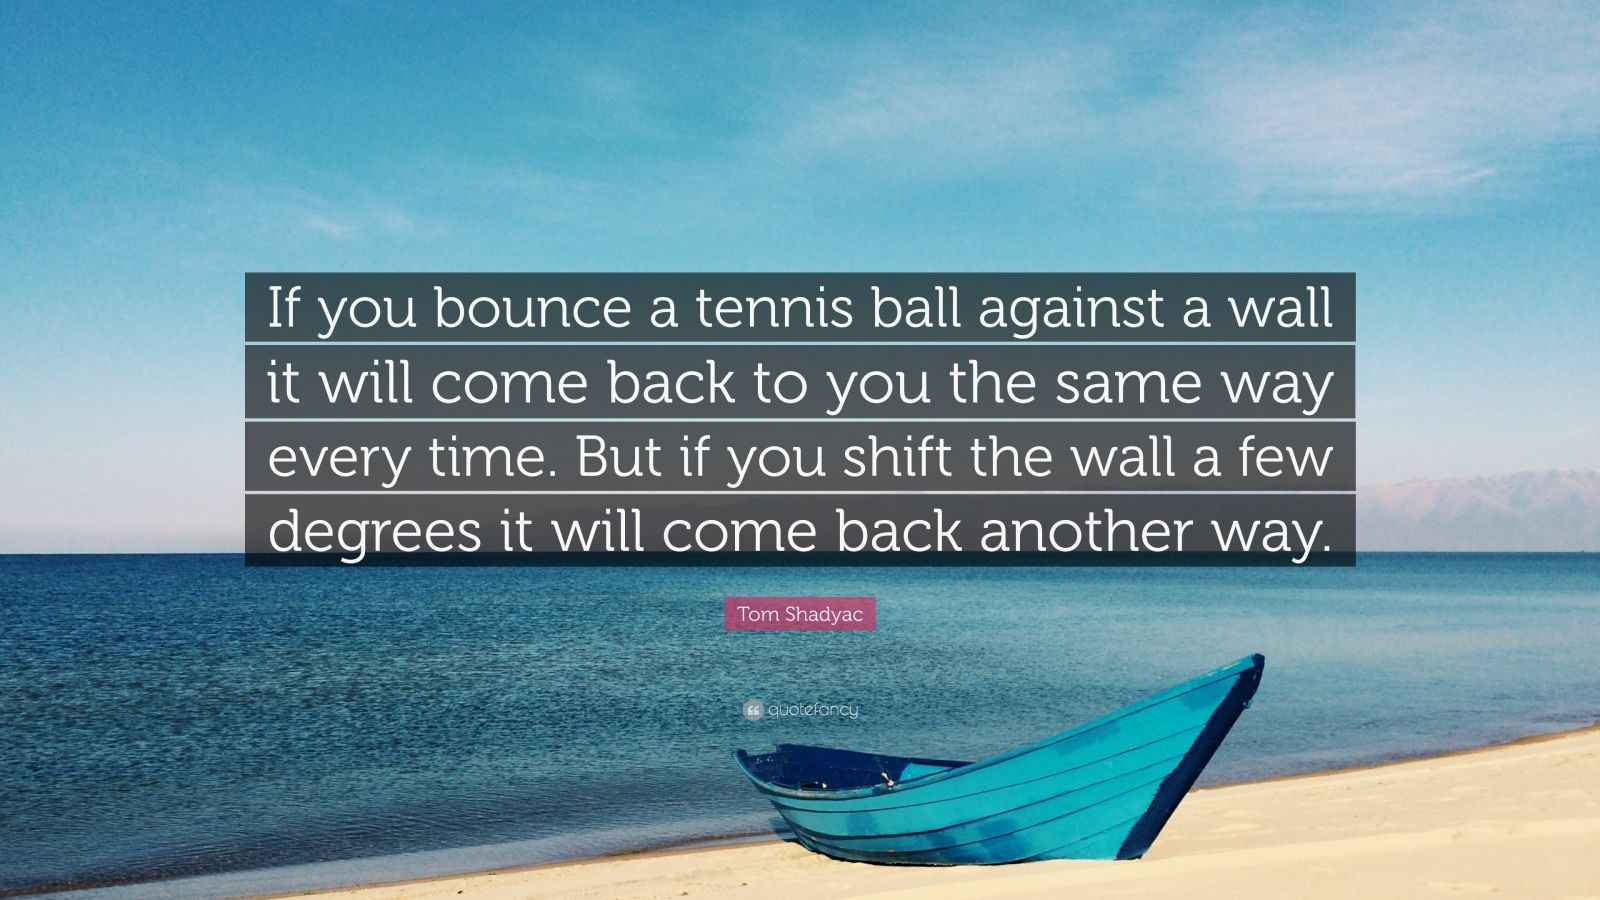 """Tom Shadyac Quote: """"If you bounce a tennis ball against a wall it will come back to you the same way every time. But if you shift the wall a few degrees it will come back another way."""""""